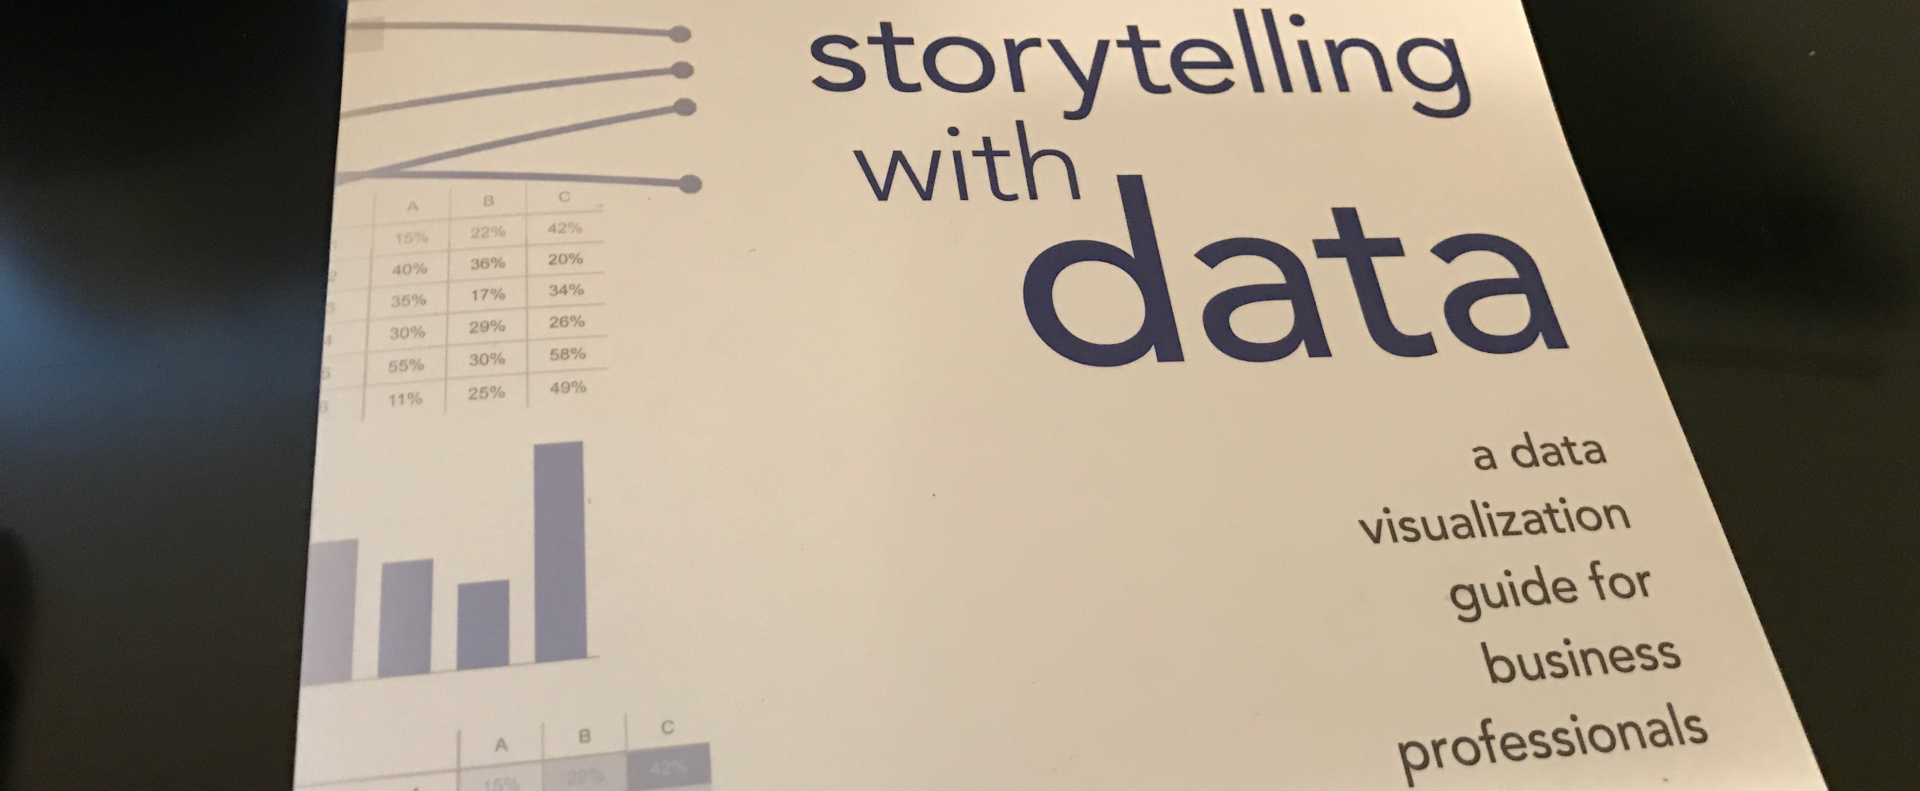 storytelling with data a data visualization guide for business professionals